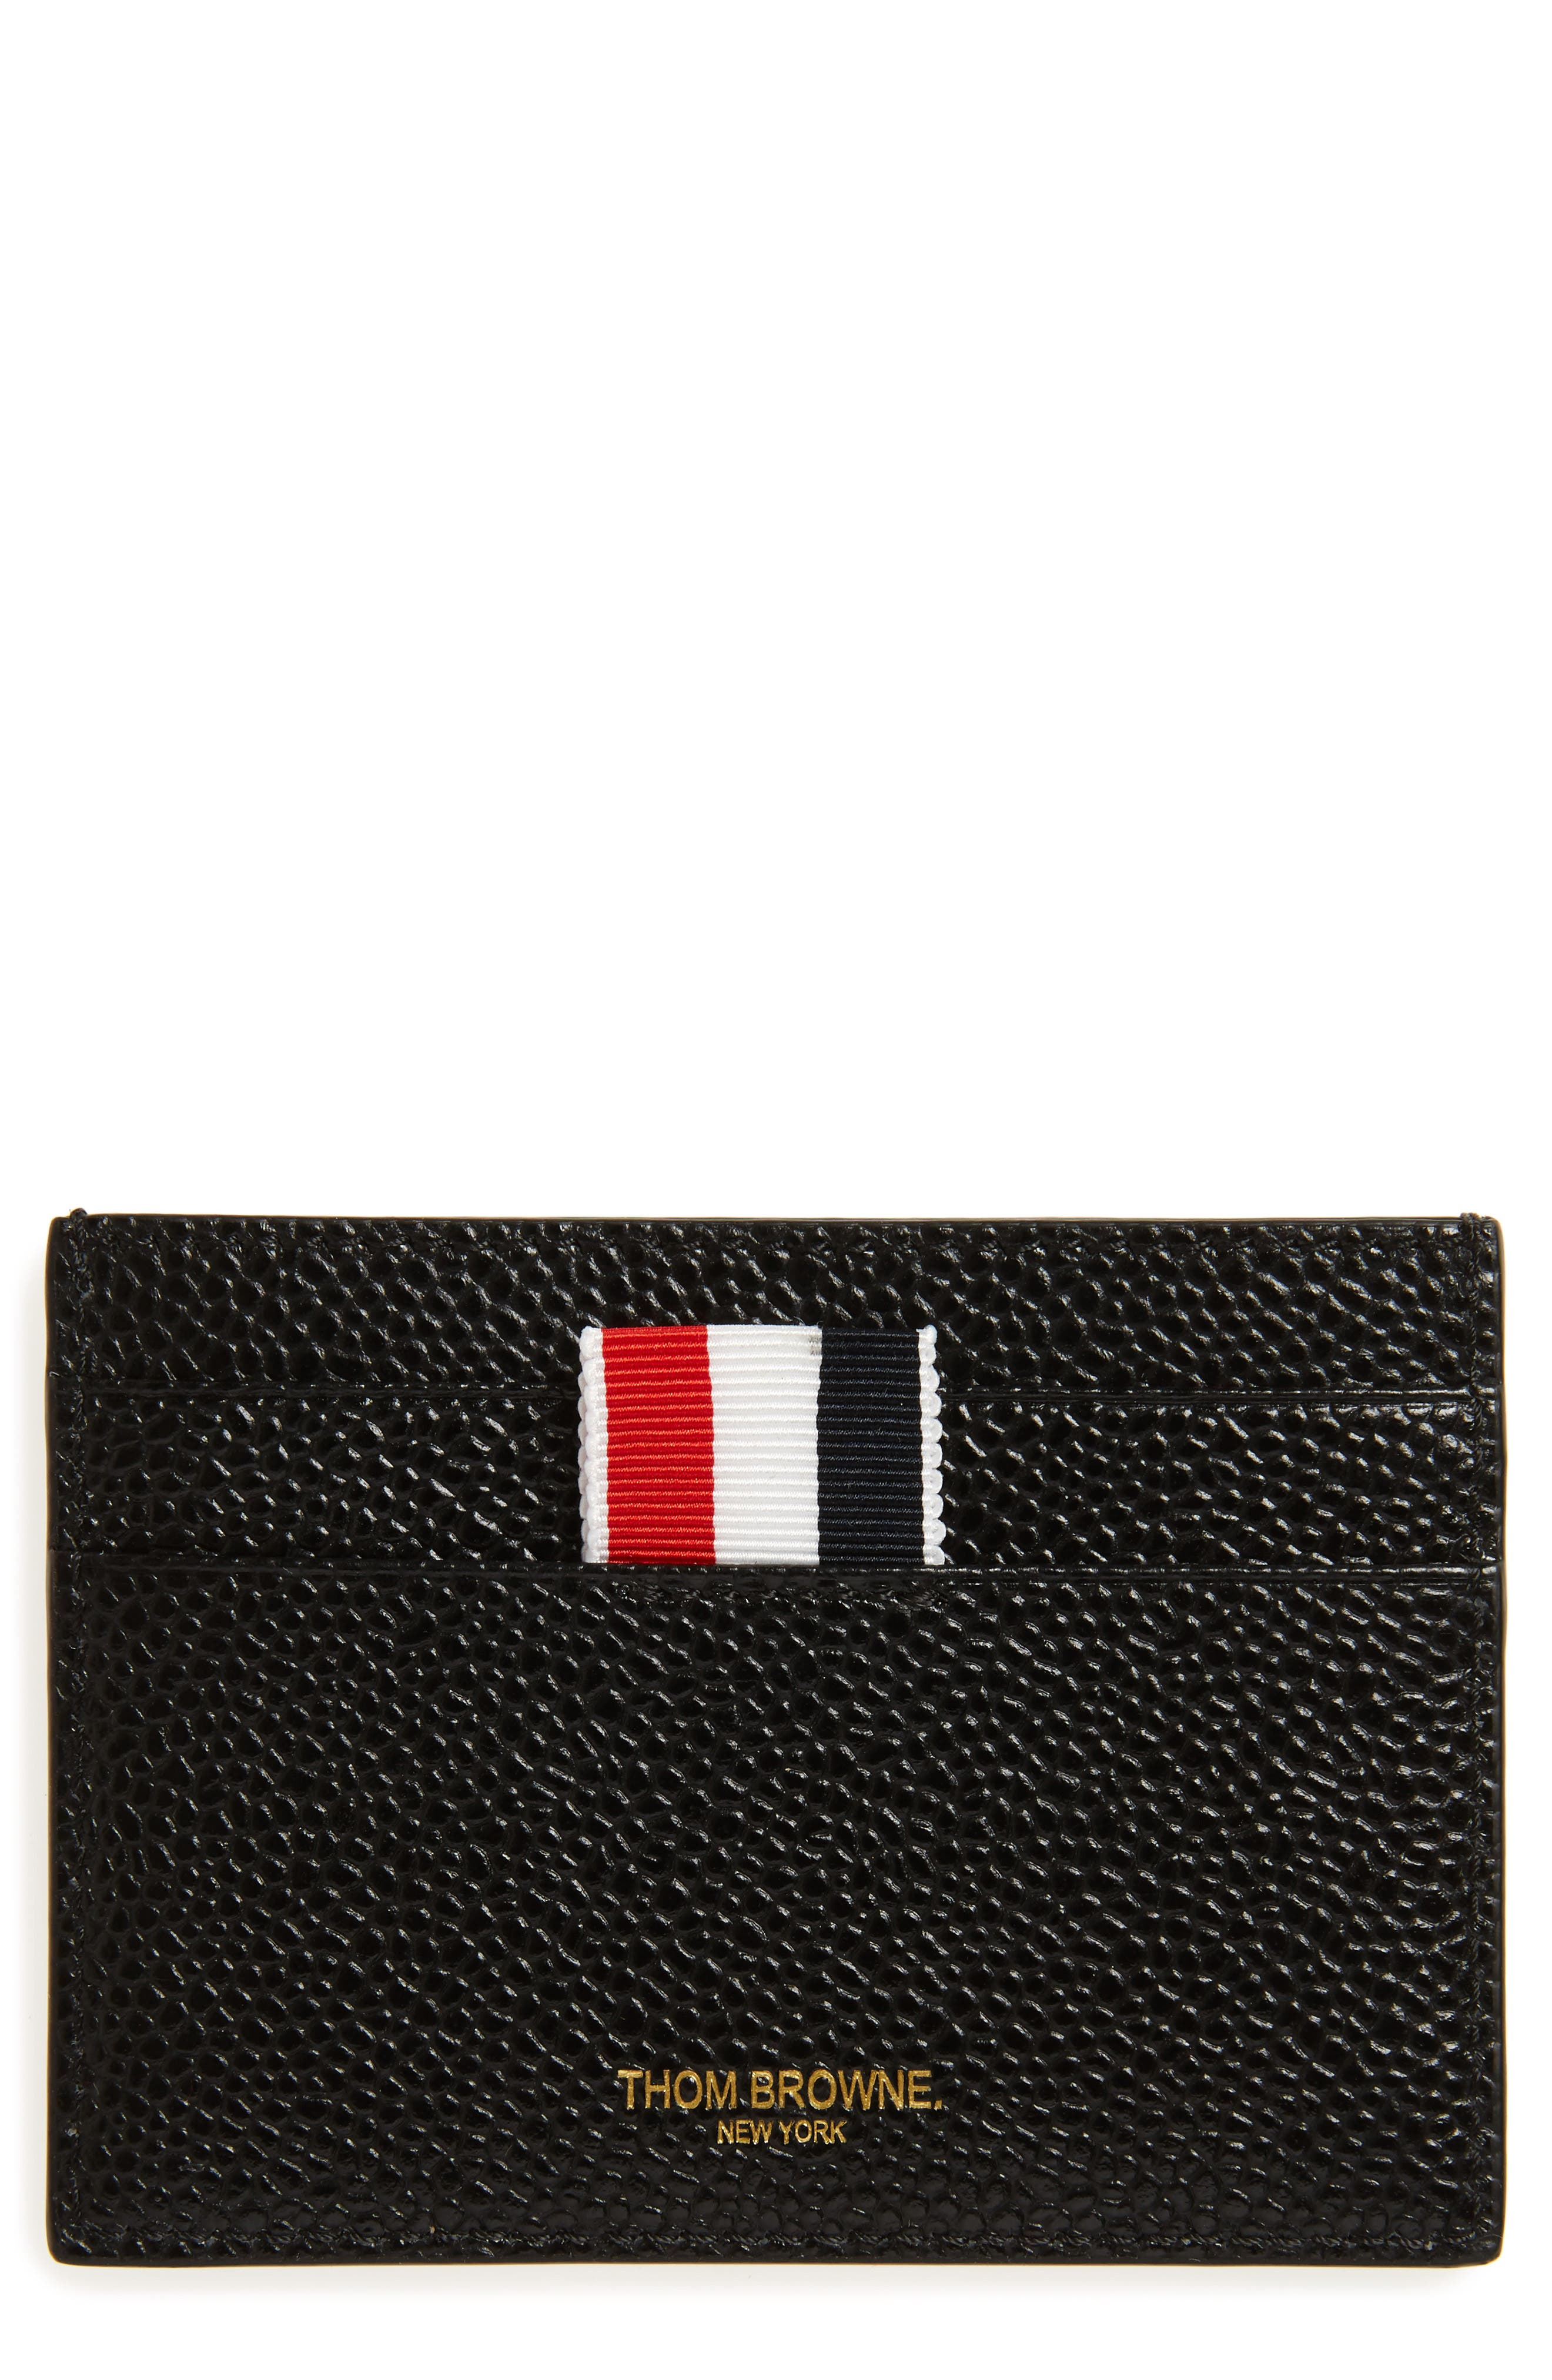 Alternate Image 1 Selected - Thom Browne Patent Leather Card Case